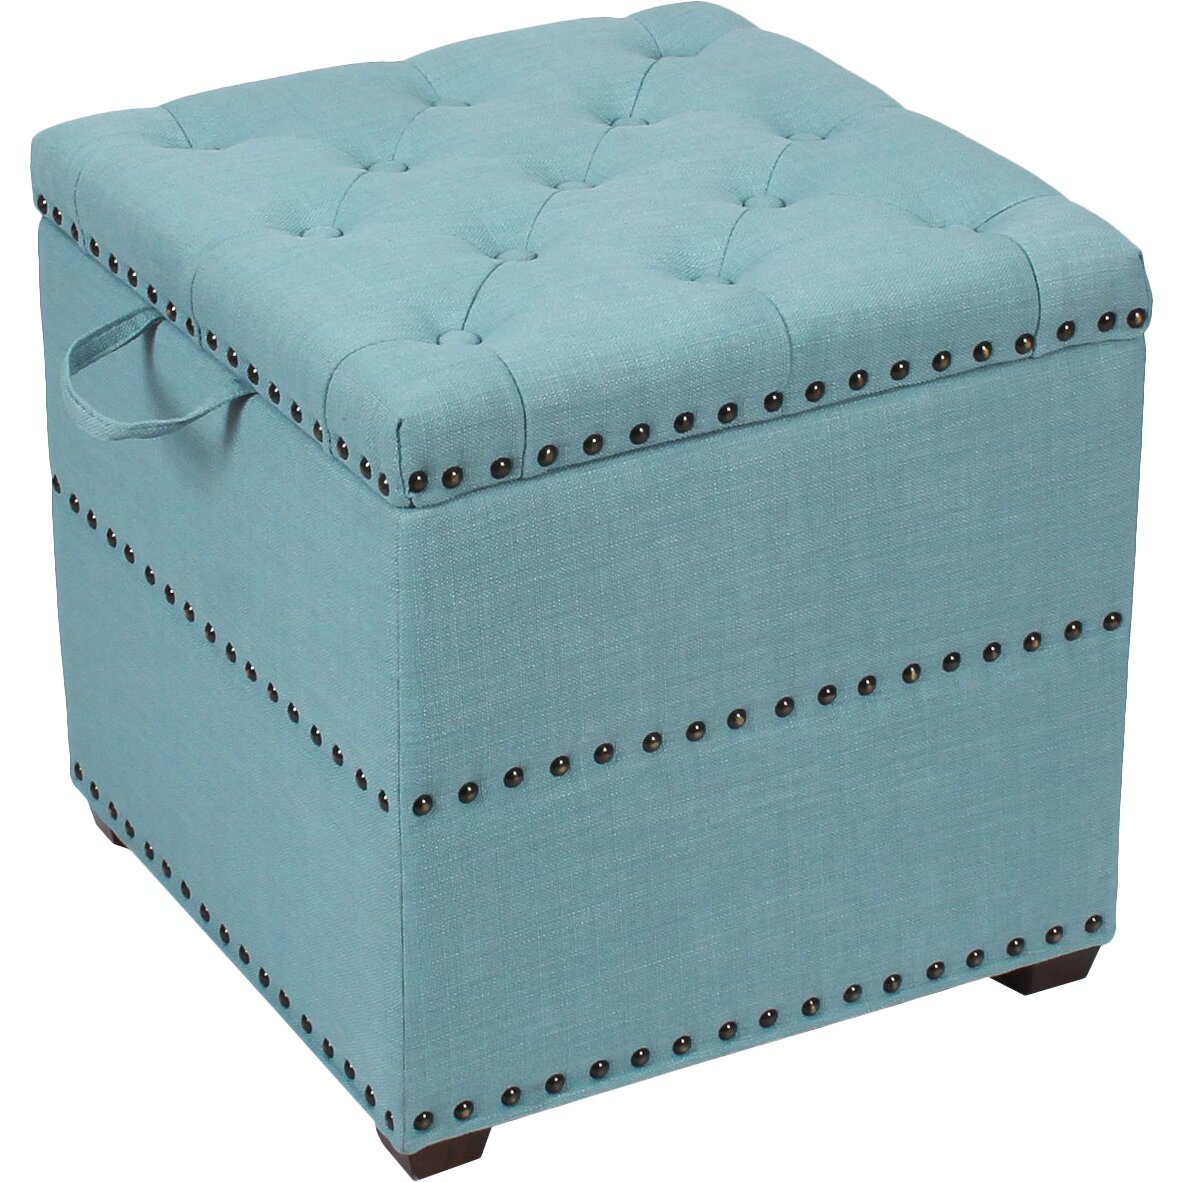 Adecotrading Square Cube Ottoman Reviews Wayfair